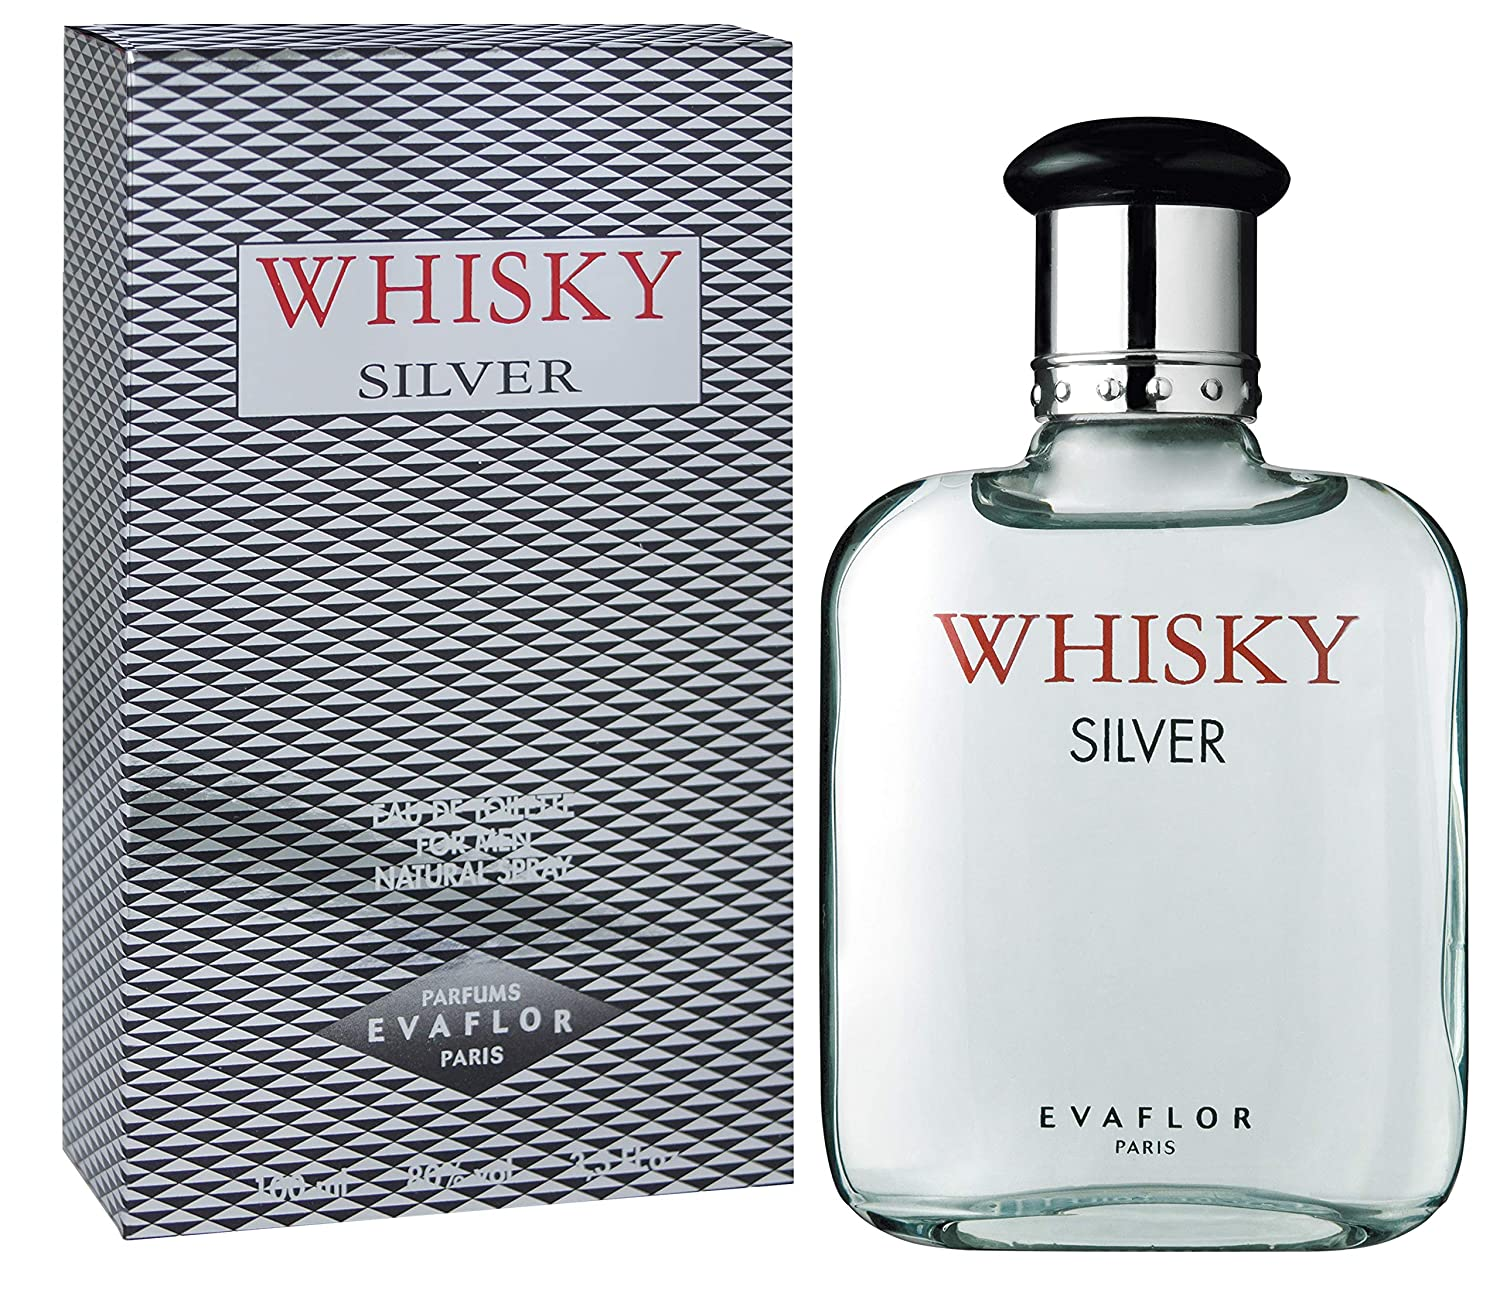 Perfume oil inspired by Whisky Silver